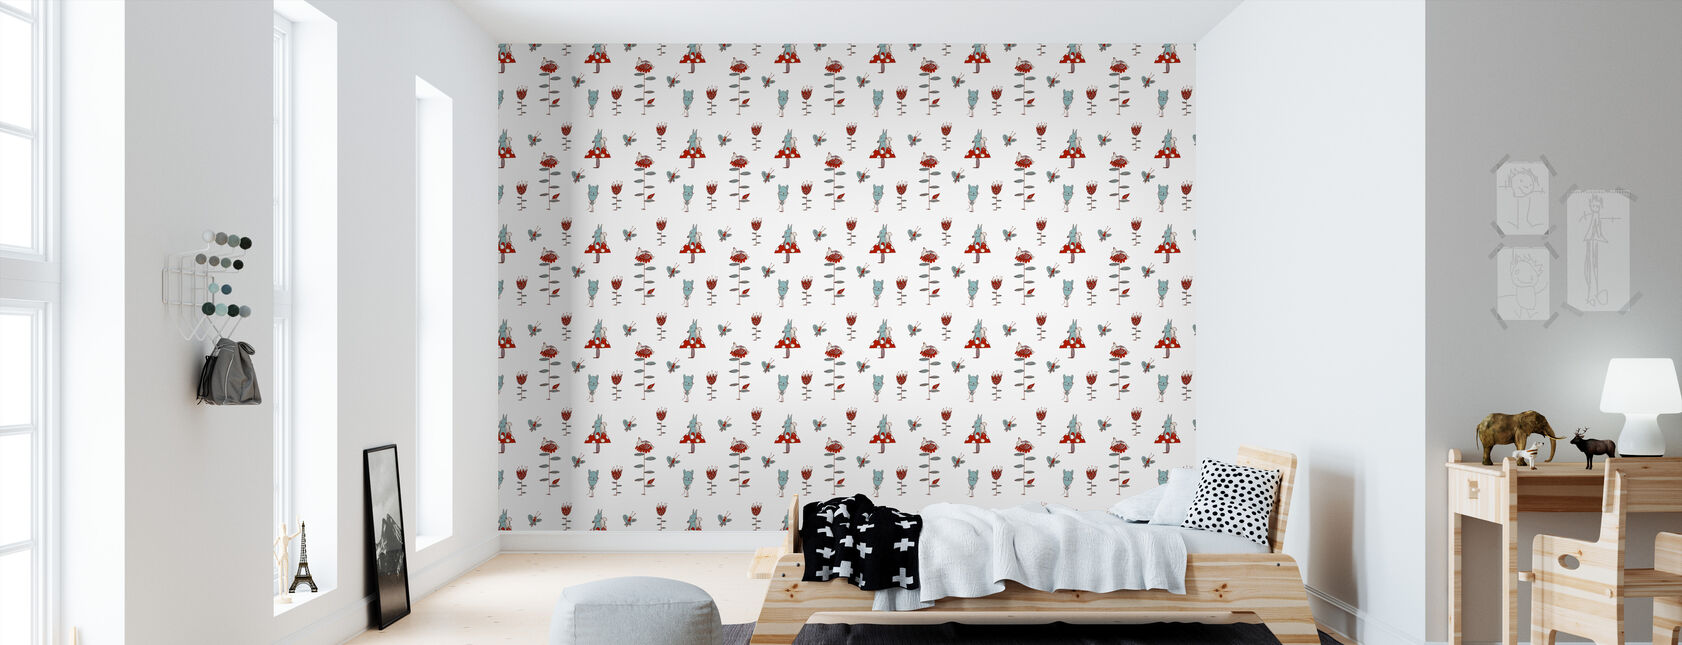 Lazybones - Wallpaper - Kids Room